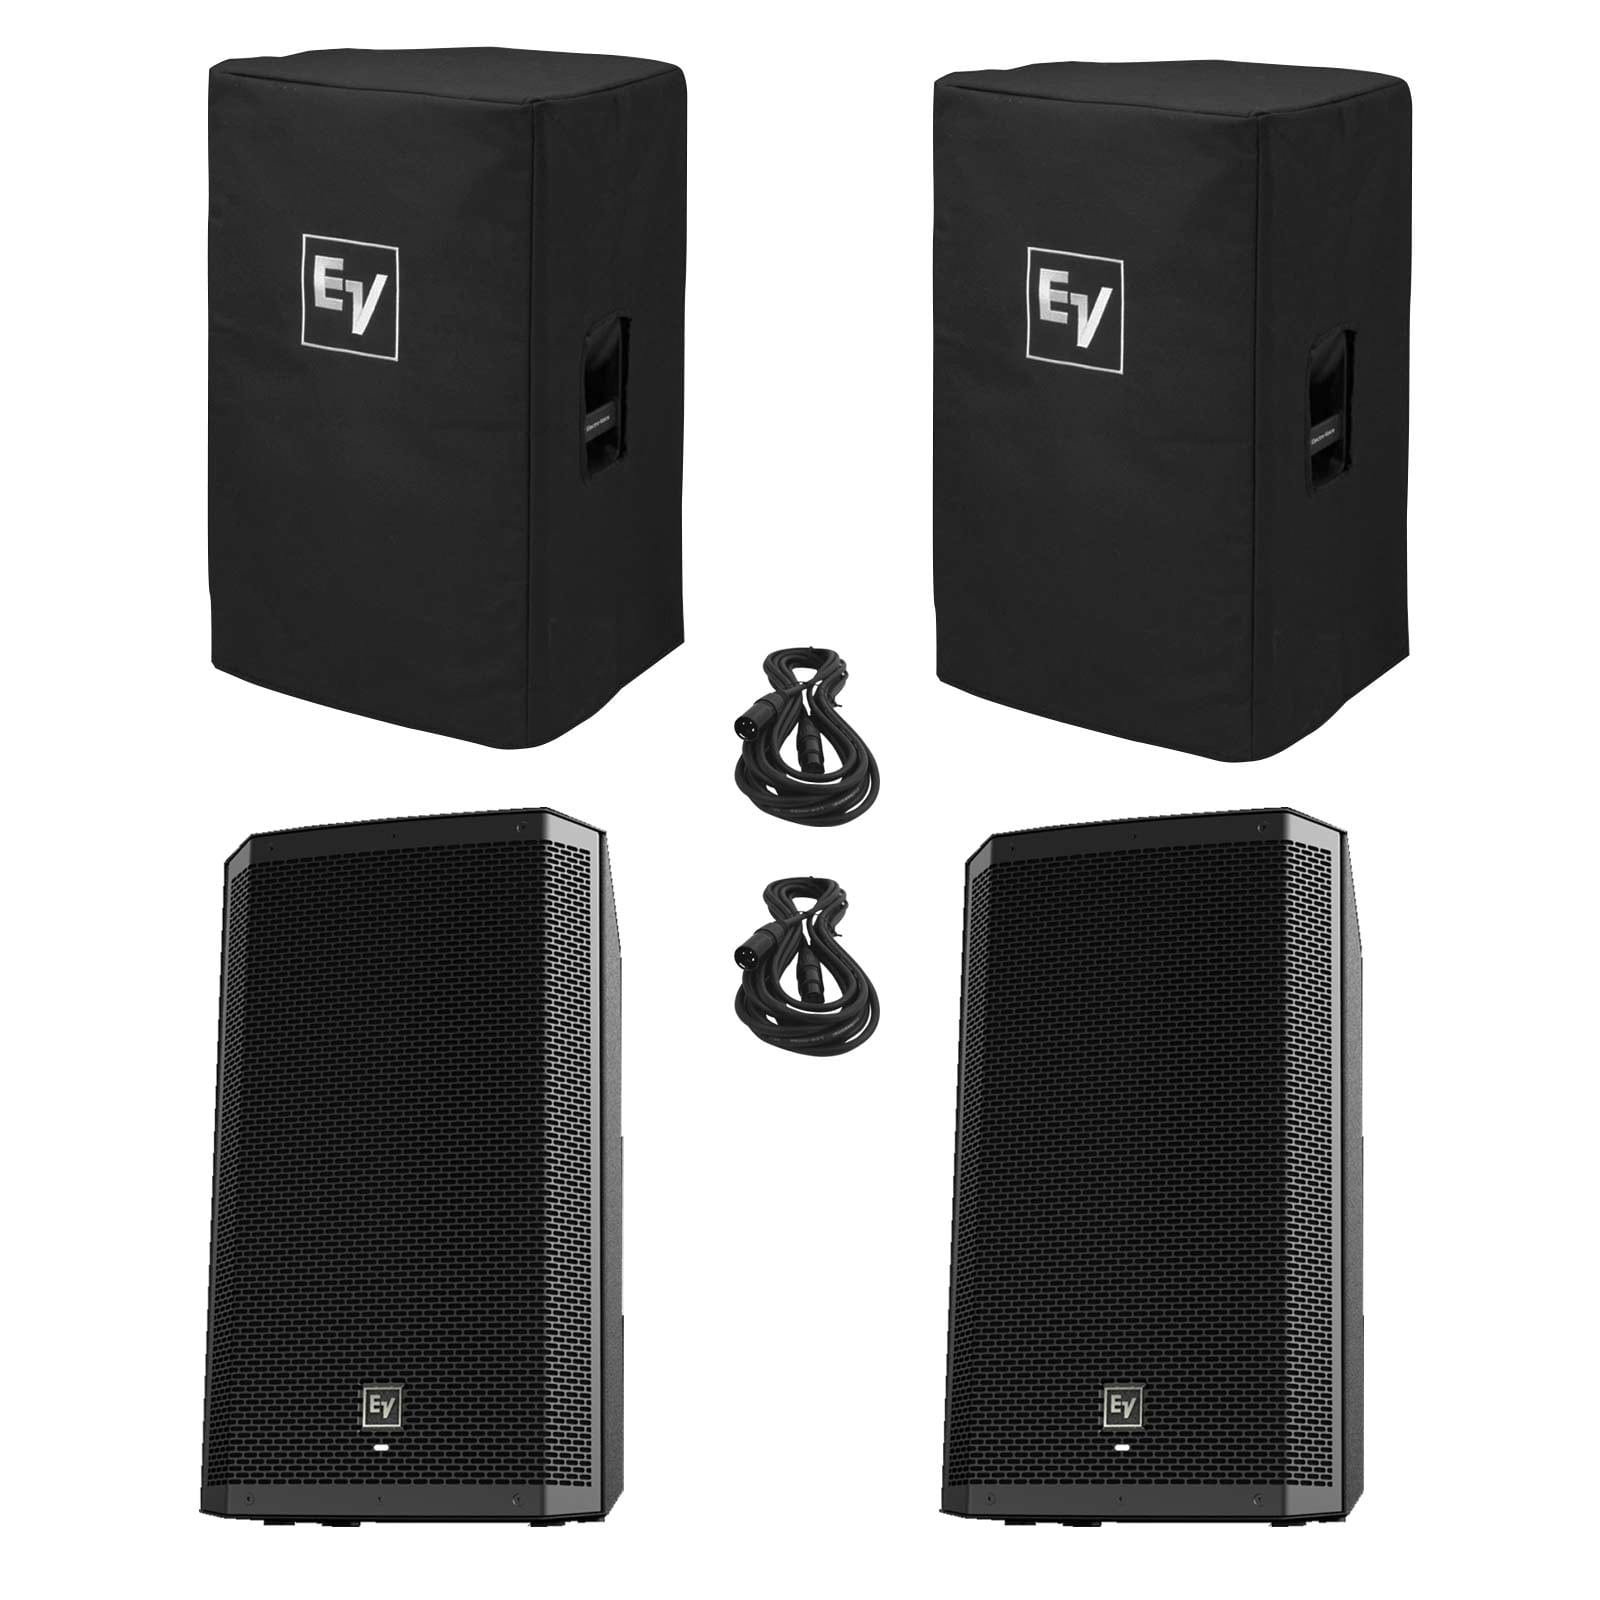 2-electro-voice-zlx-12p-12-powered-pa-loudspeakers-packaged-with-protective-speaker-covers-633.jpg